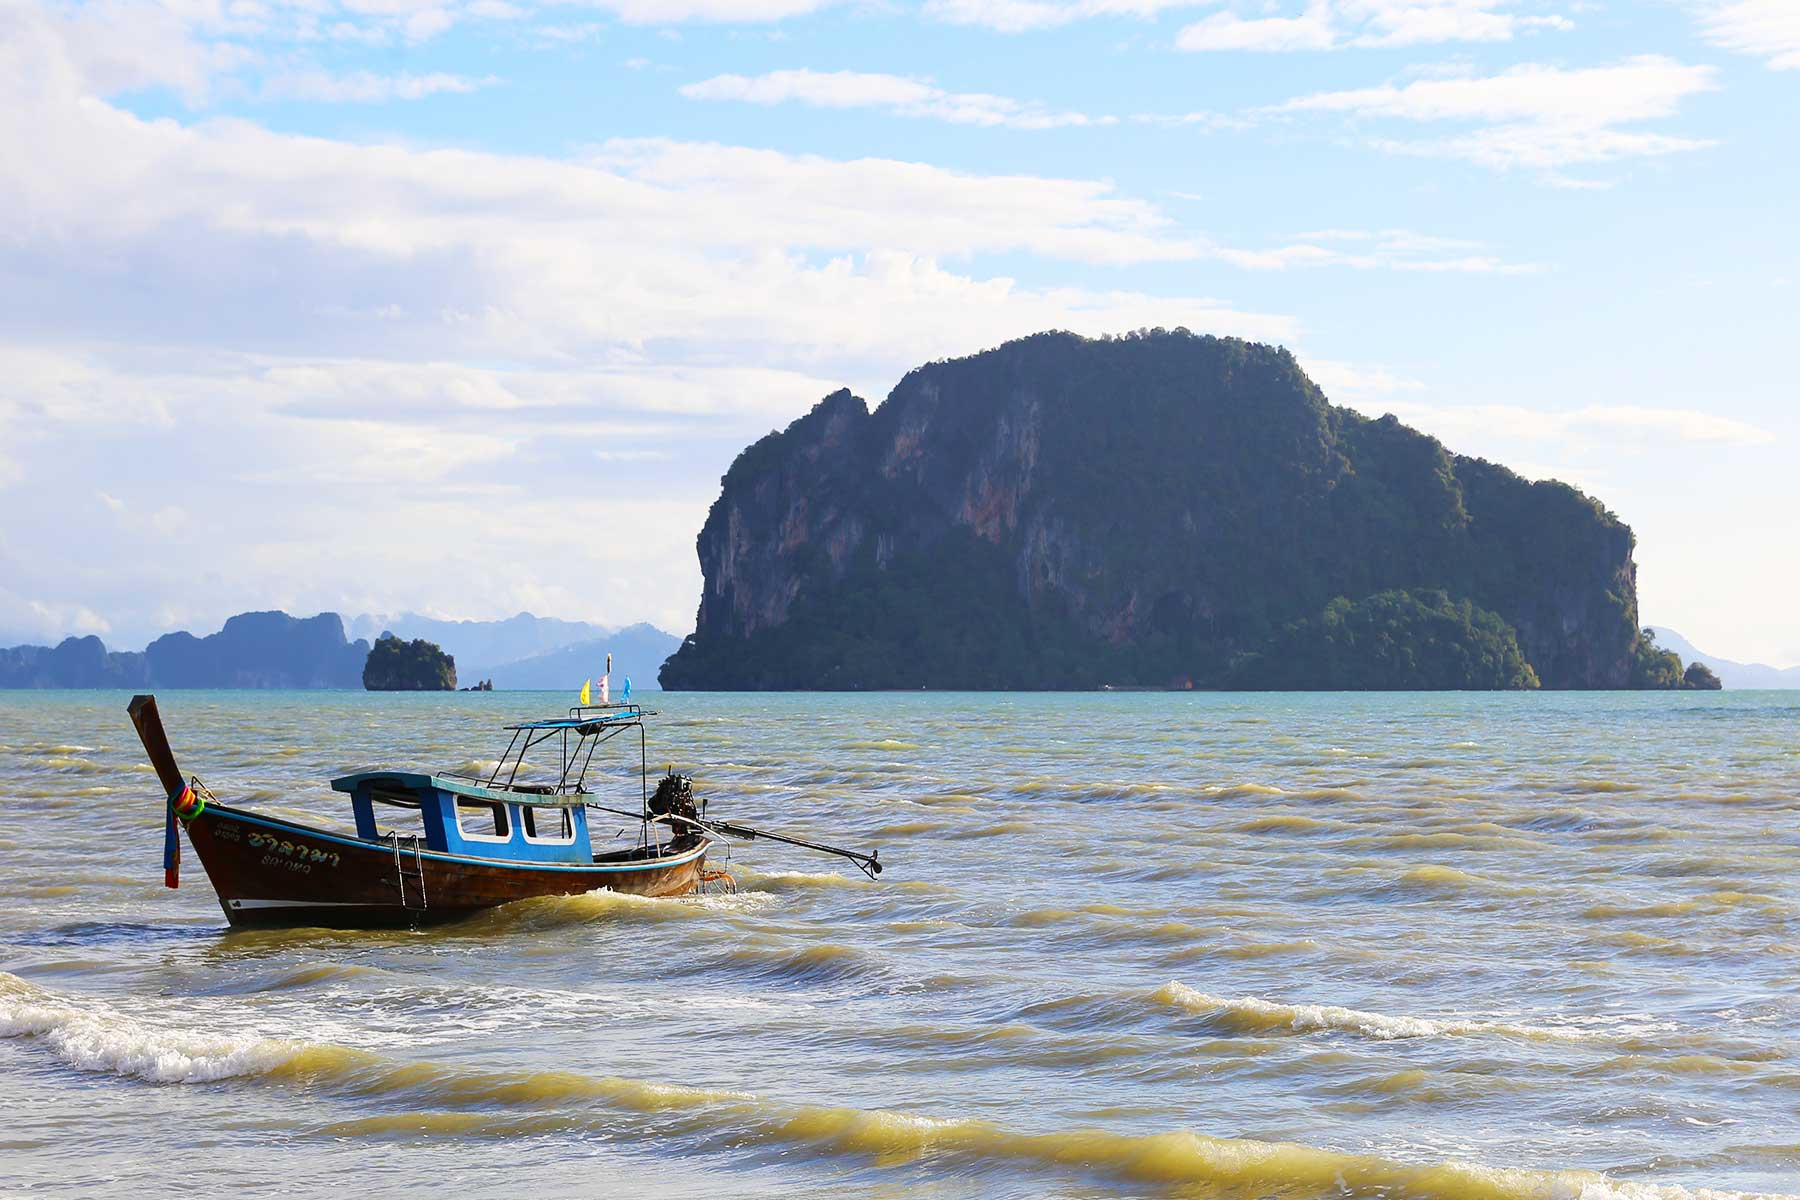 Ko Yao Yai - Phuket | Thai Tourism Geography Research | Dr Steven Andrew Martin | International Education Online